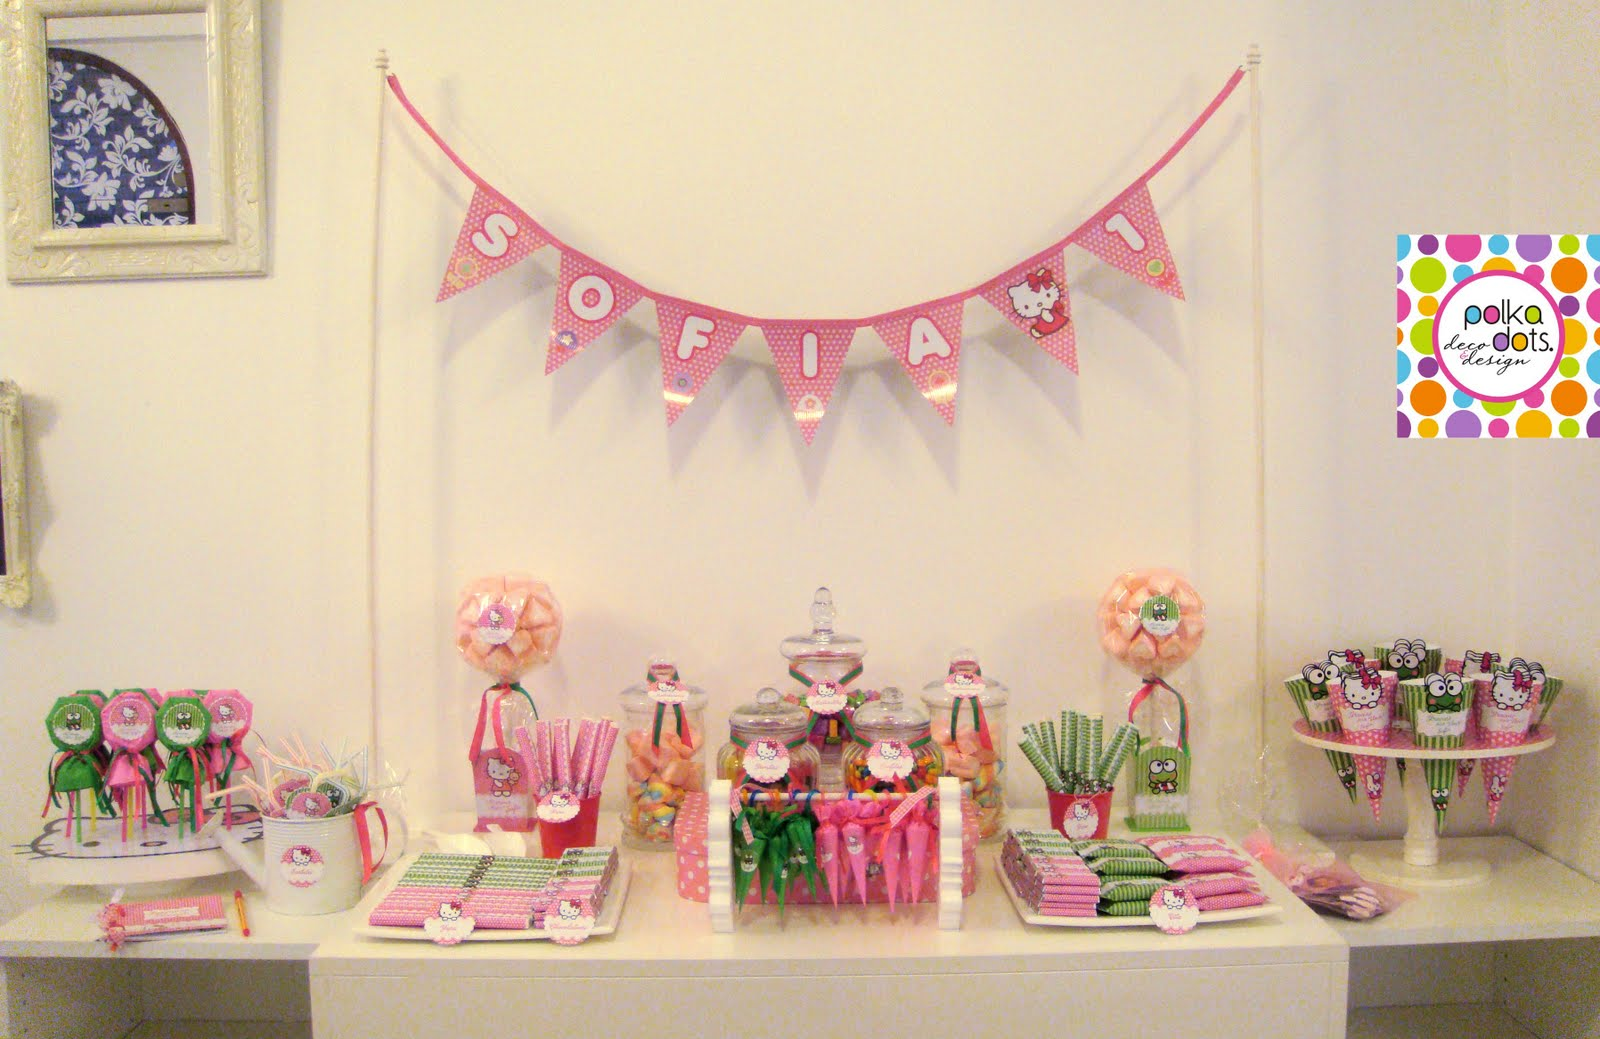 CANDY BAR KITTY   KEROPI   By Polka Dots